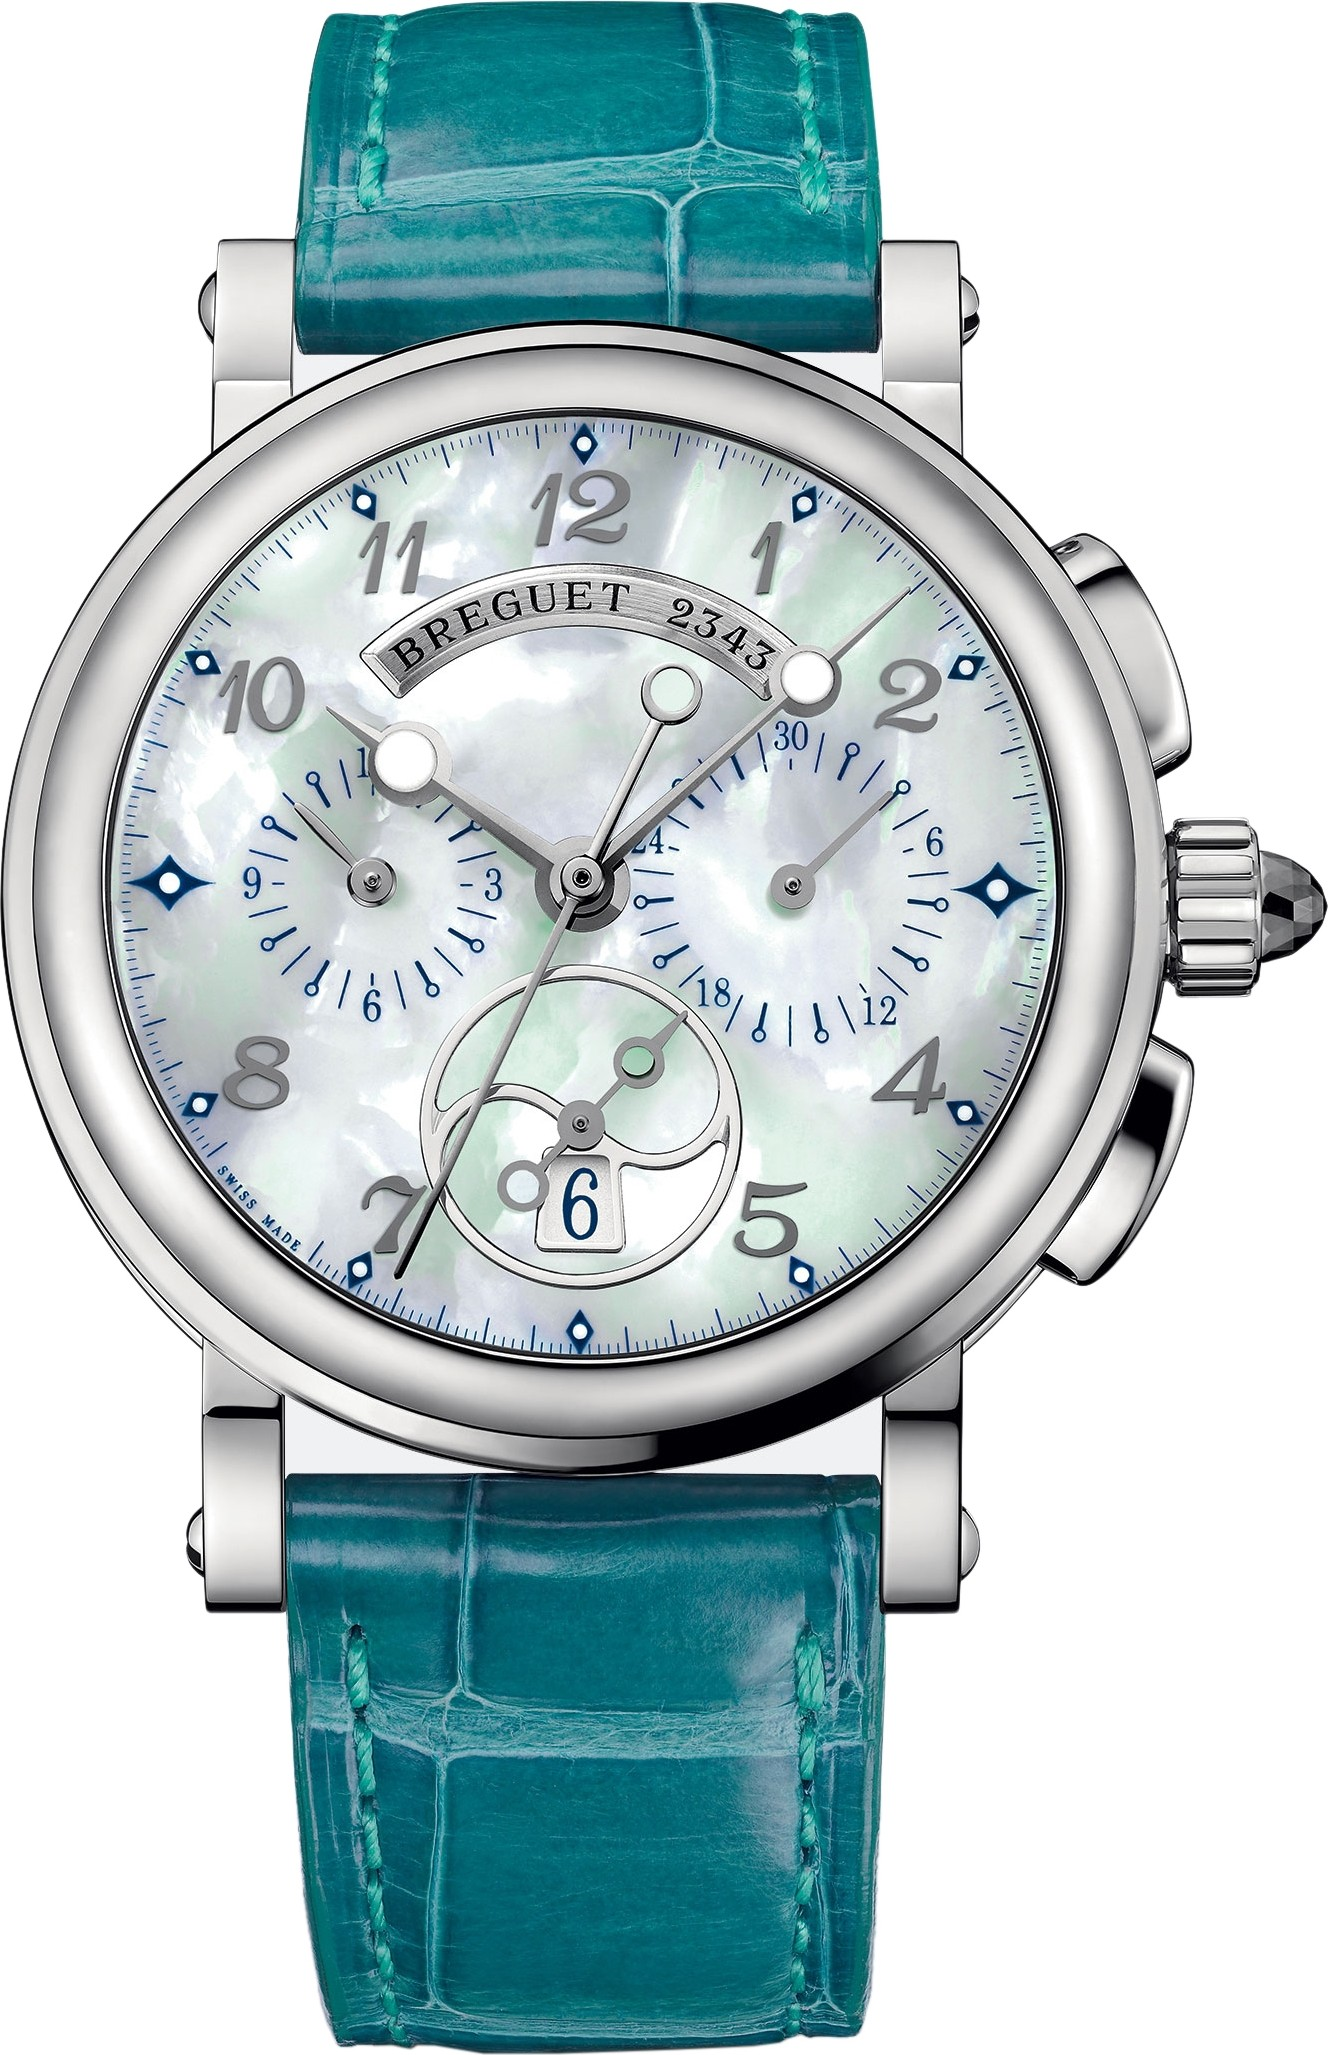 Breguet Marine Chronograph 8827st/5w/986 Watch 34.6mm